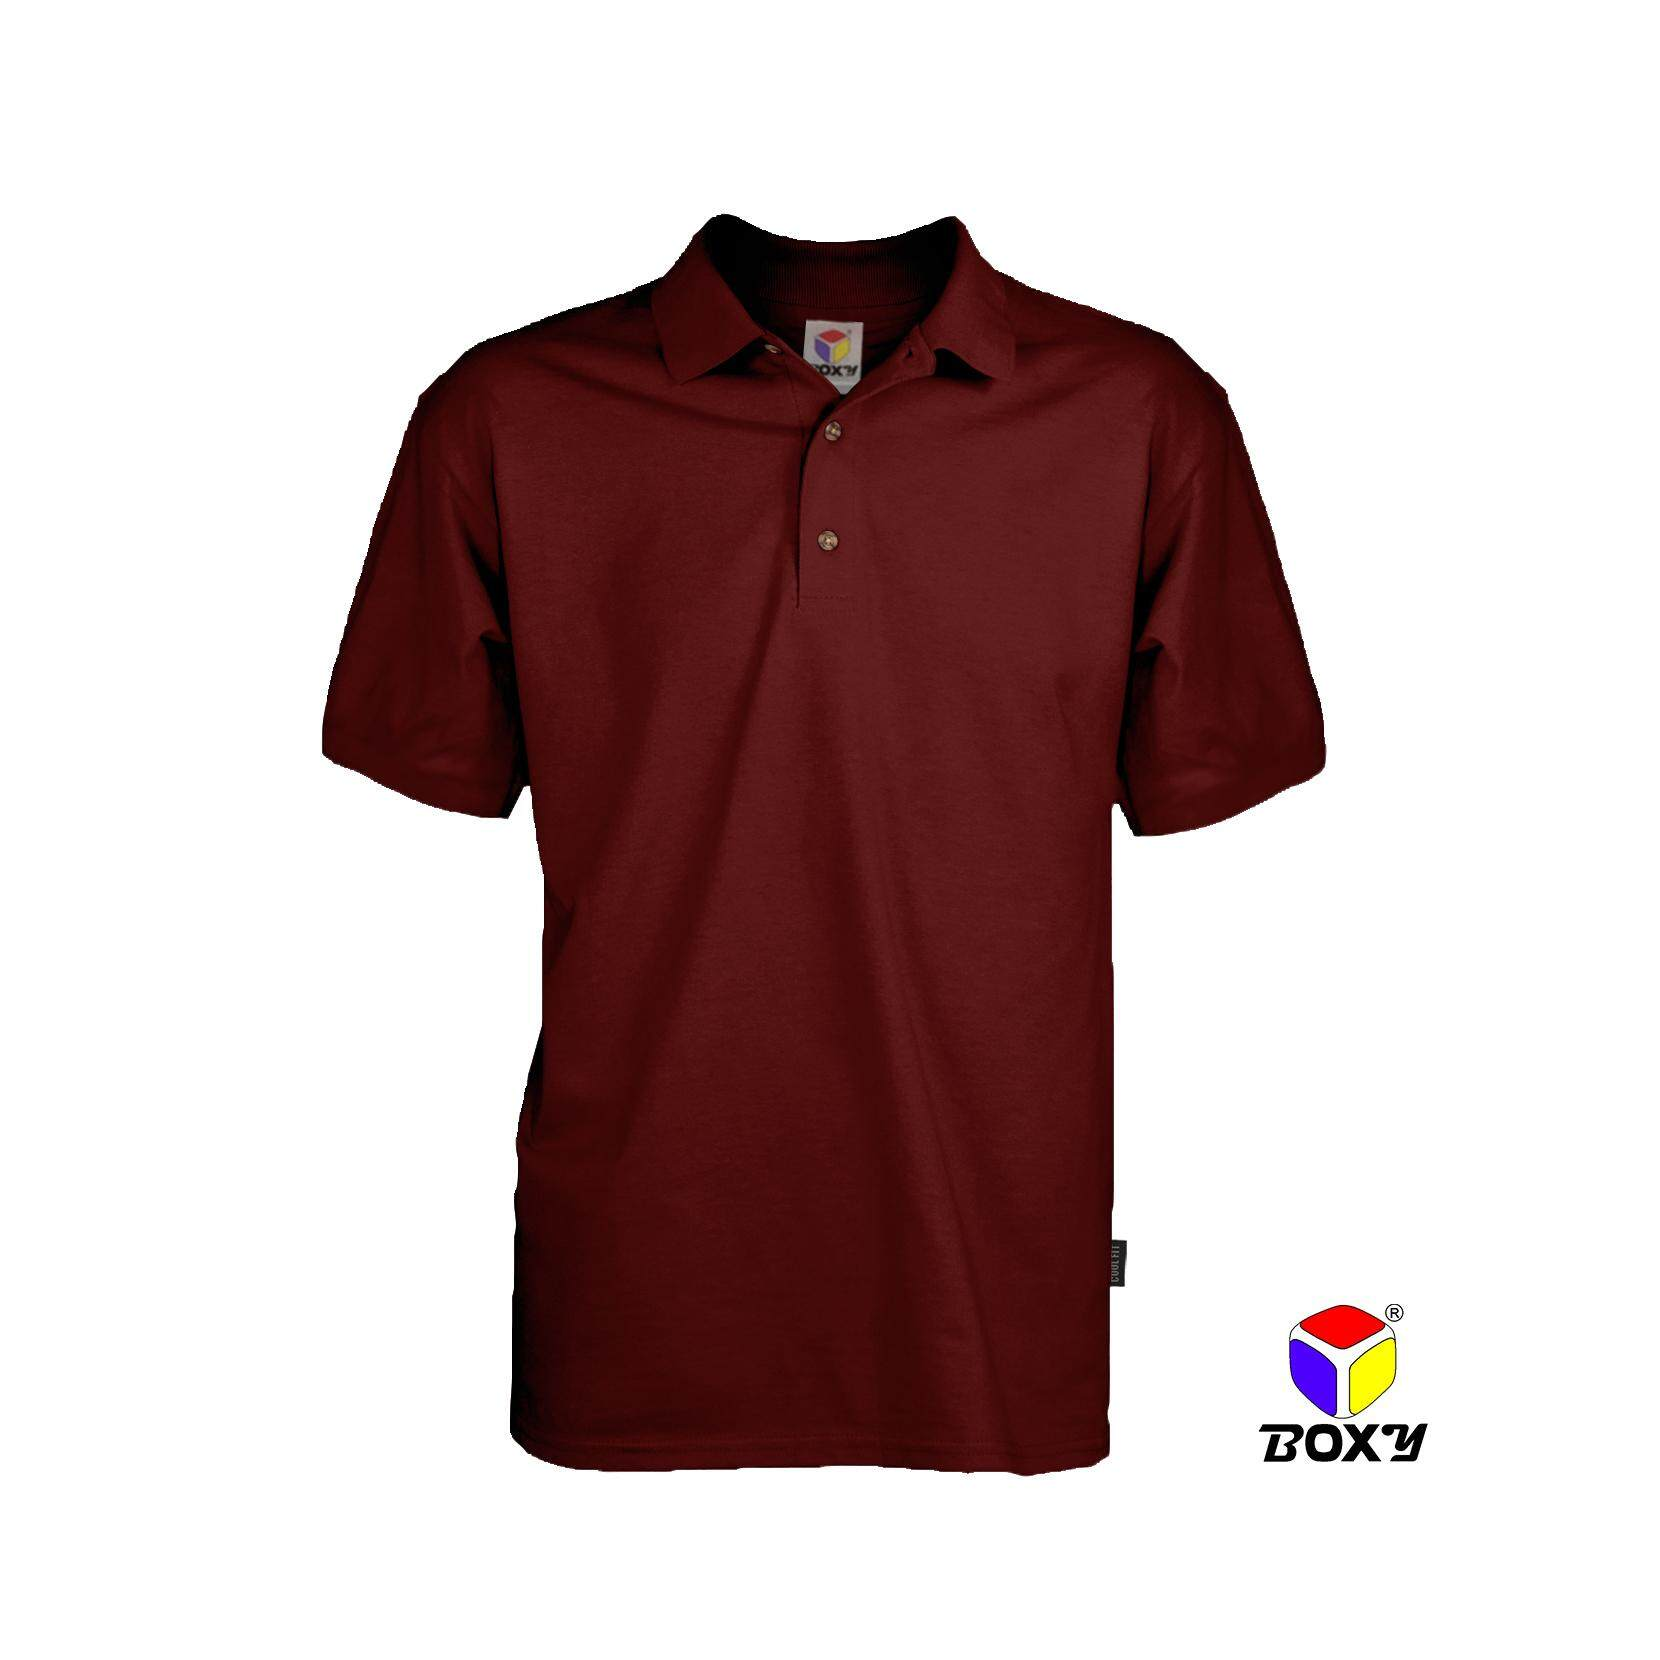 cfb550f29 Men's Polo Shirts - Buy Men's Polo Shirts at Best Price in Malaysia ...